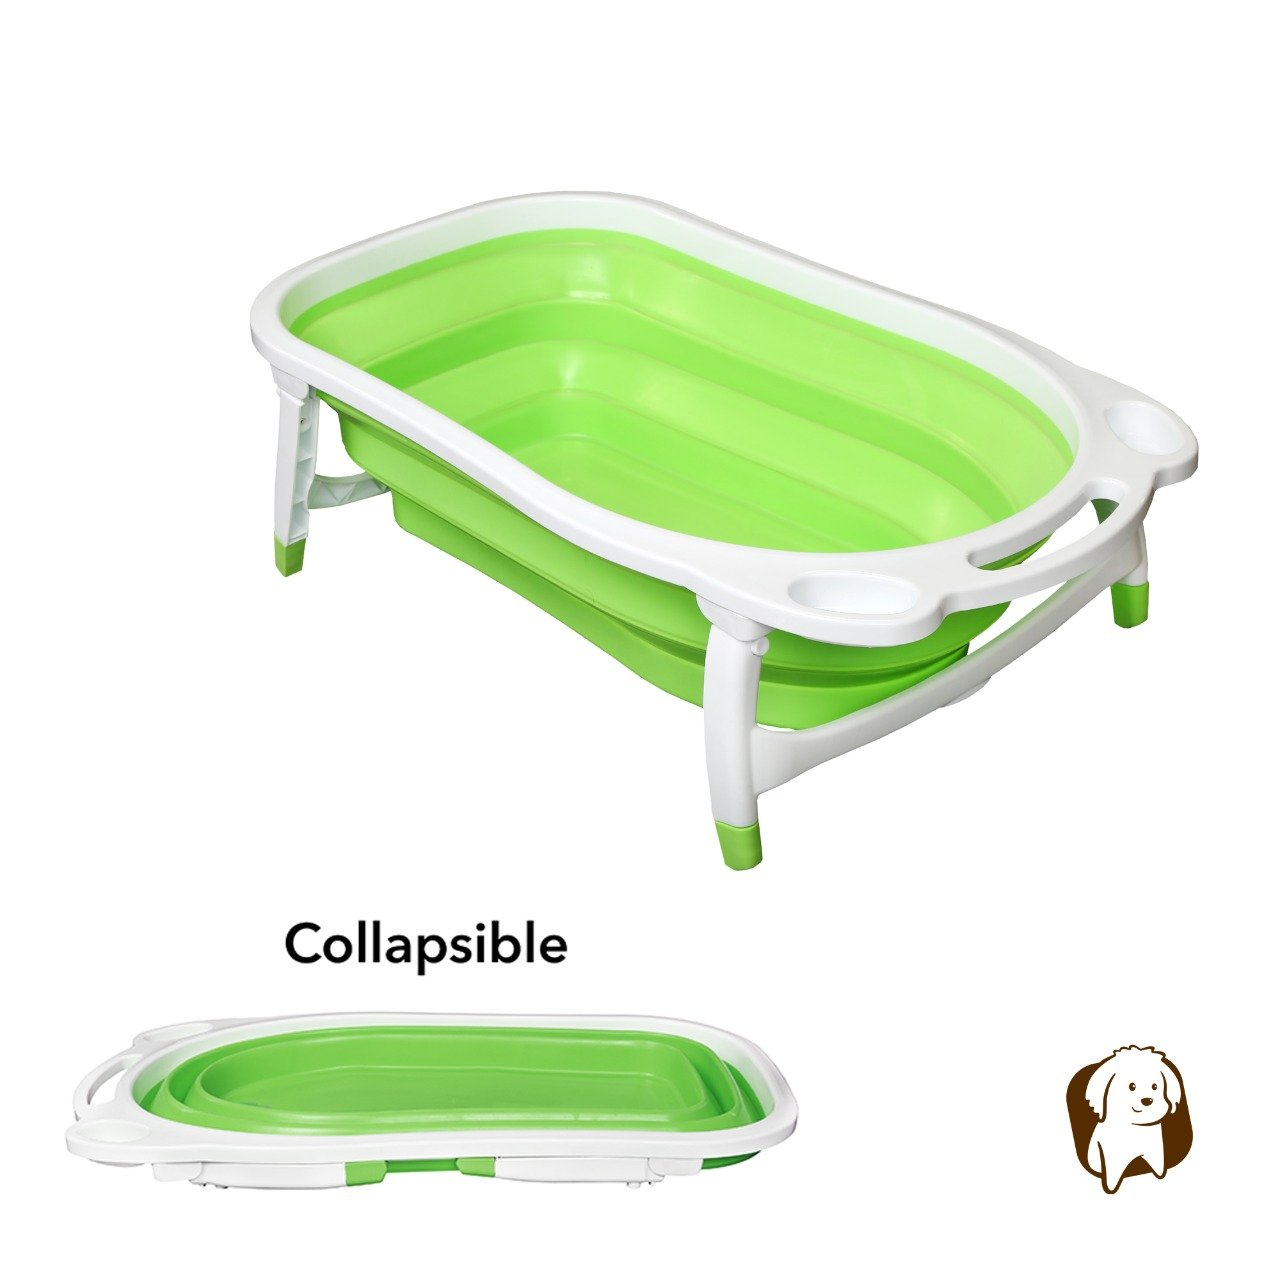 Green BaileyBear Porta Tubby Collapsible Portable Foldable Dog Cat Bath Tub, Expandable Grooming Washing Accessory For Small Medium Pets, 31.5 x17.3 x8.7